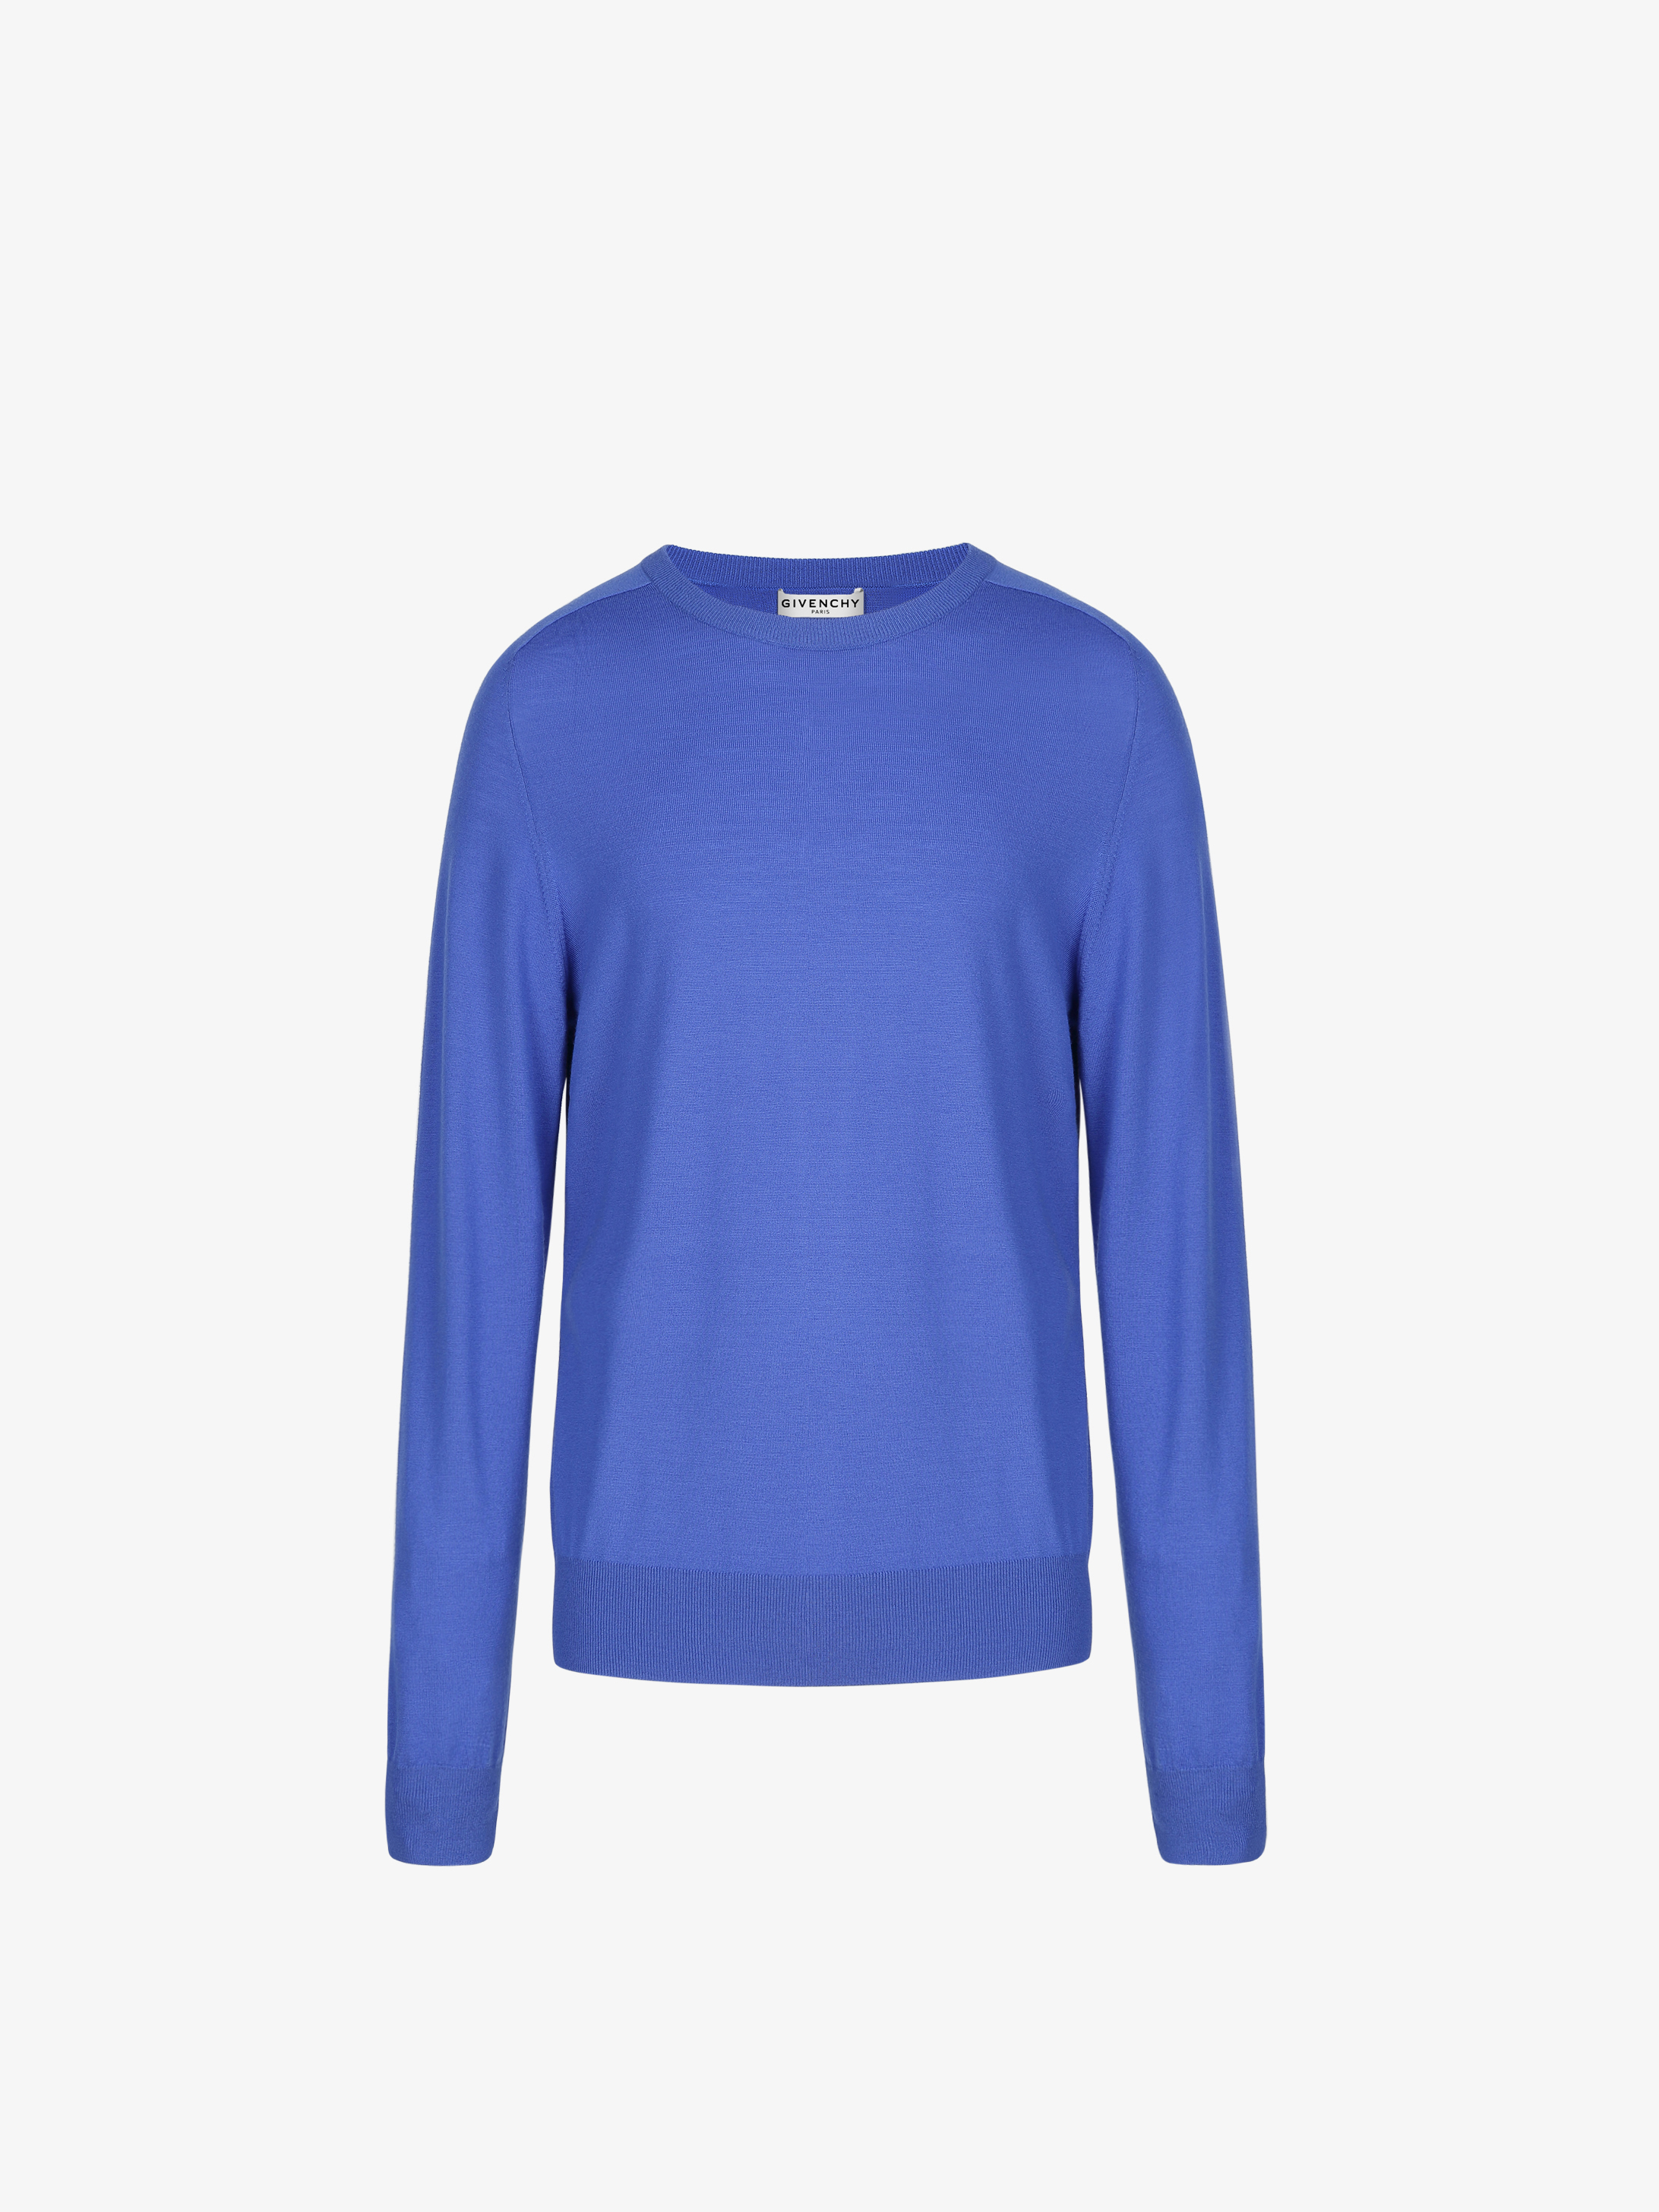 GIVENCHY ADDRESS band sweater in merino